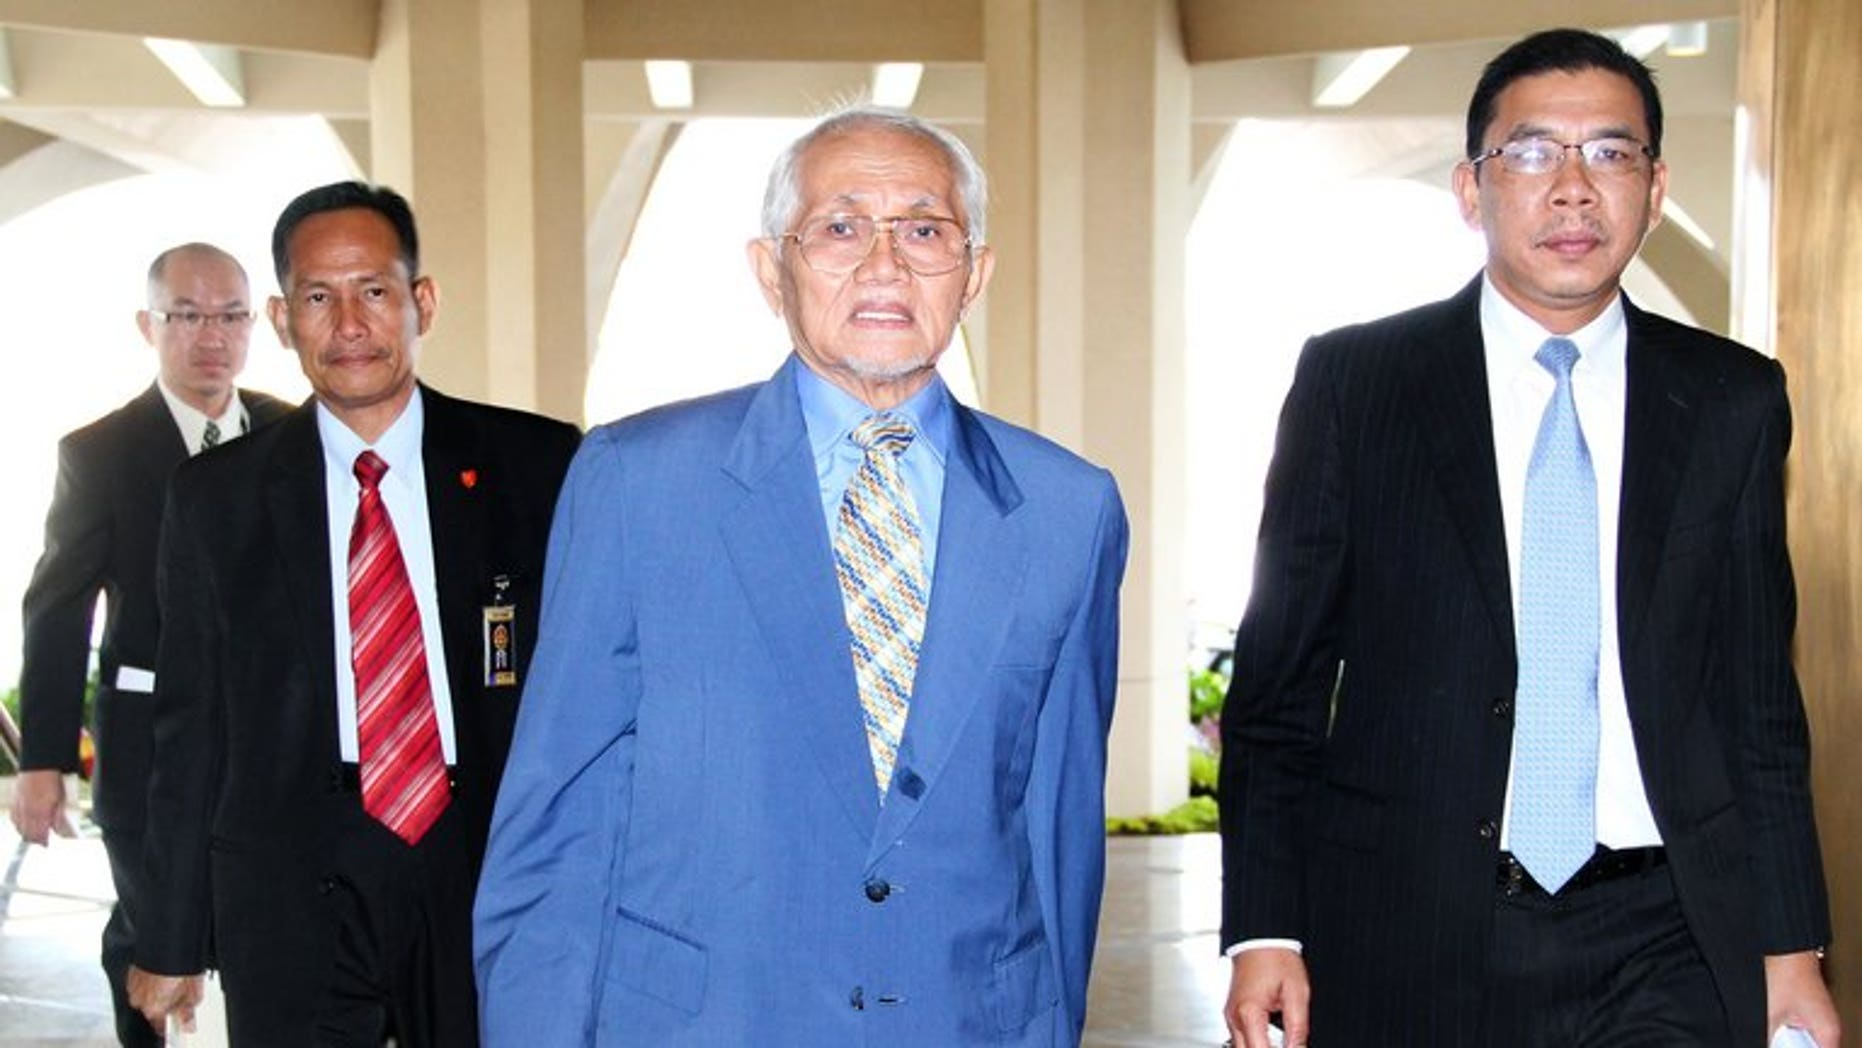 Sarawak chief minister Taib Mahmud (C) arrives at the State Legislative Assembly in Kuching, May 21, 2013. The activist sister-in-law of former British prime minister Gordon Brown says she was deported Sarawak whose powerful leader is widely accused of massive corruption.